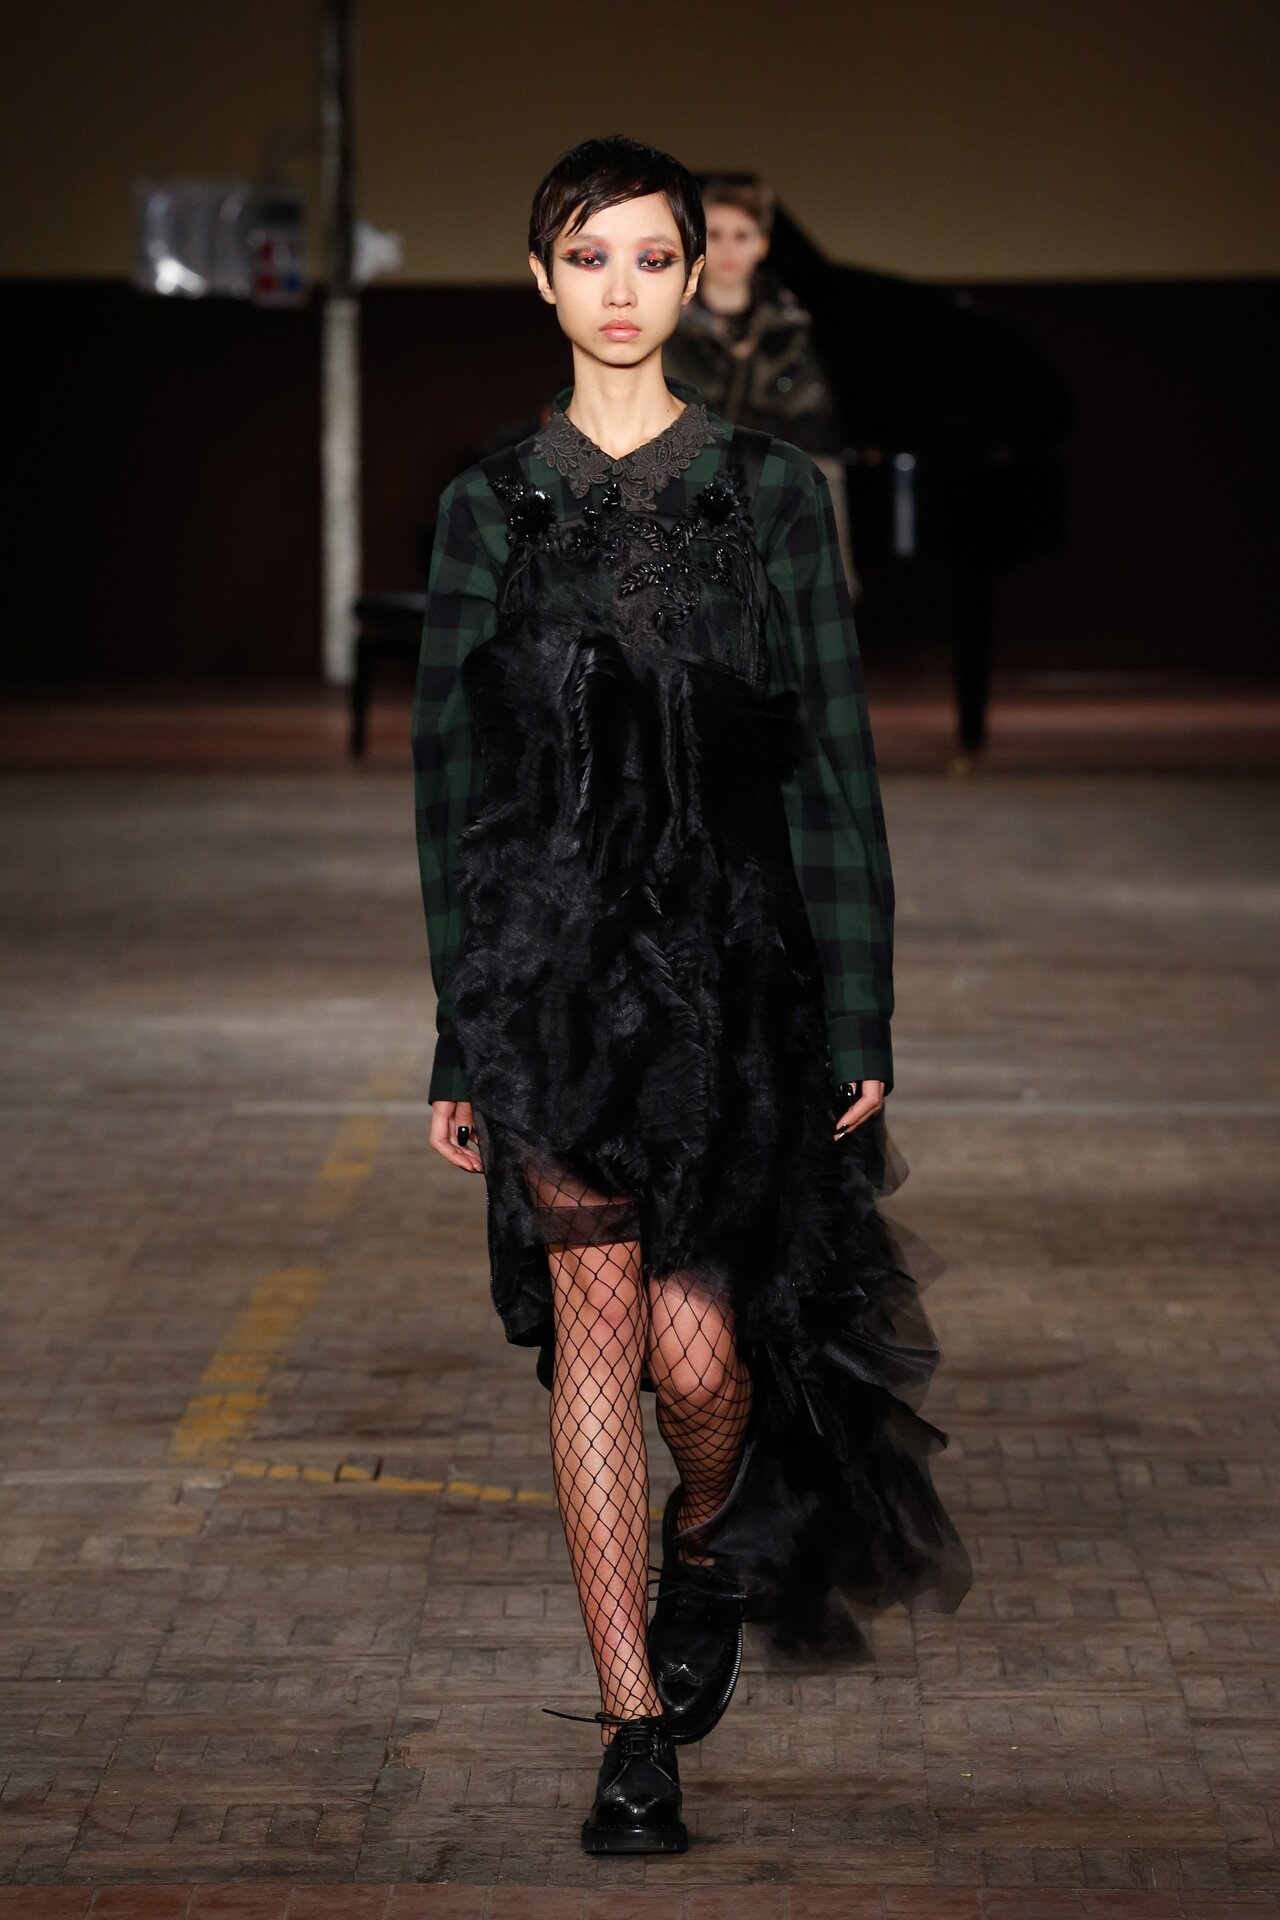 Antonio Marras Fall Winter 2018-19 Fashion Show Look 46